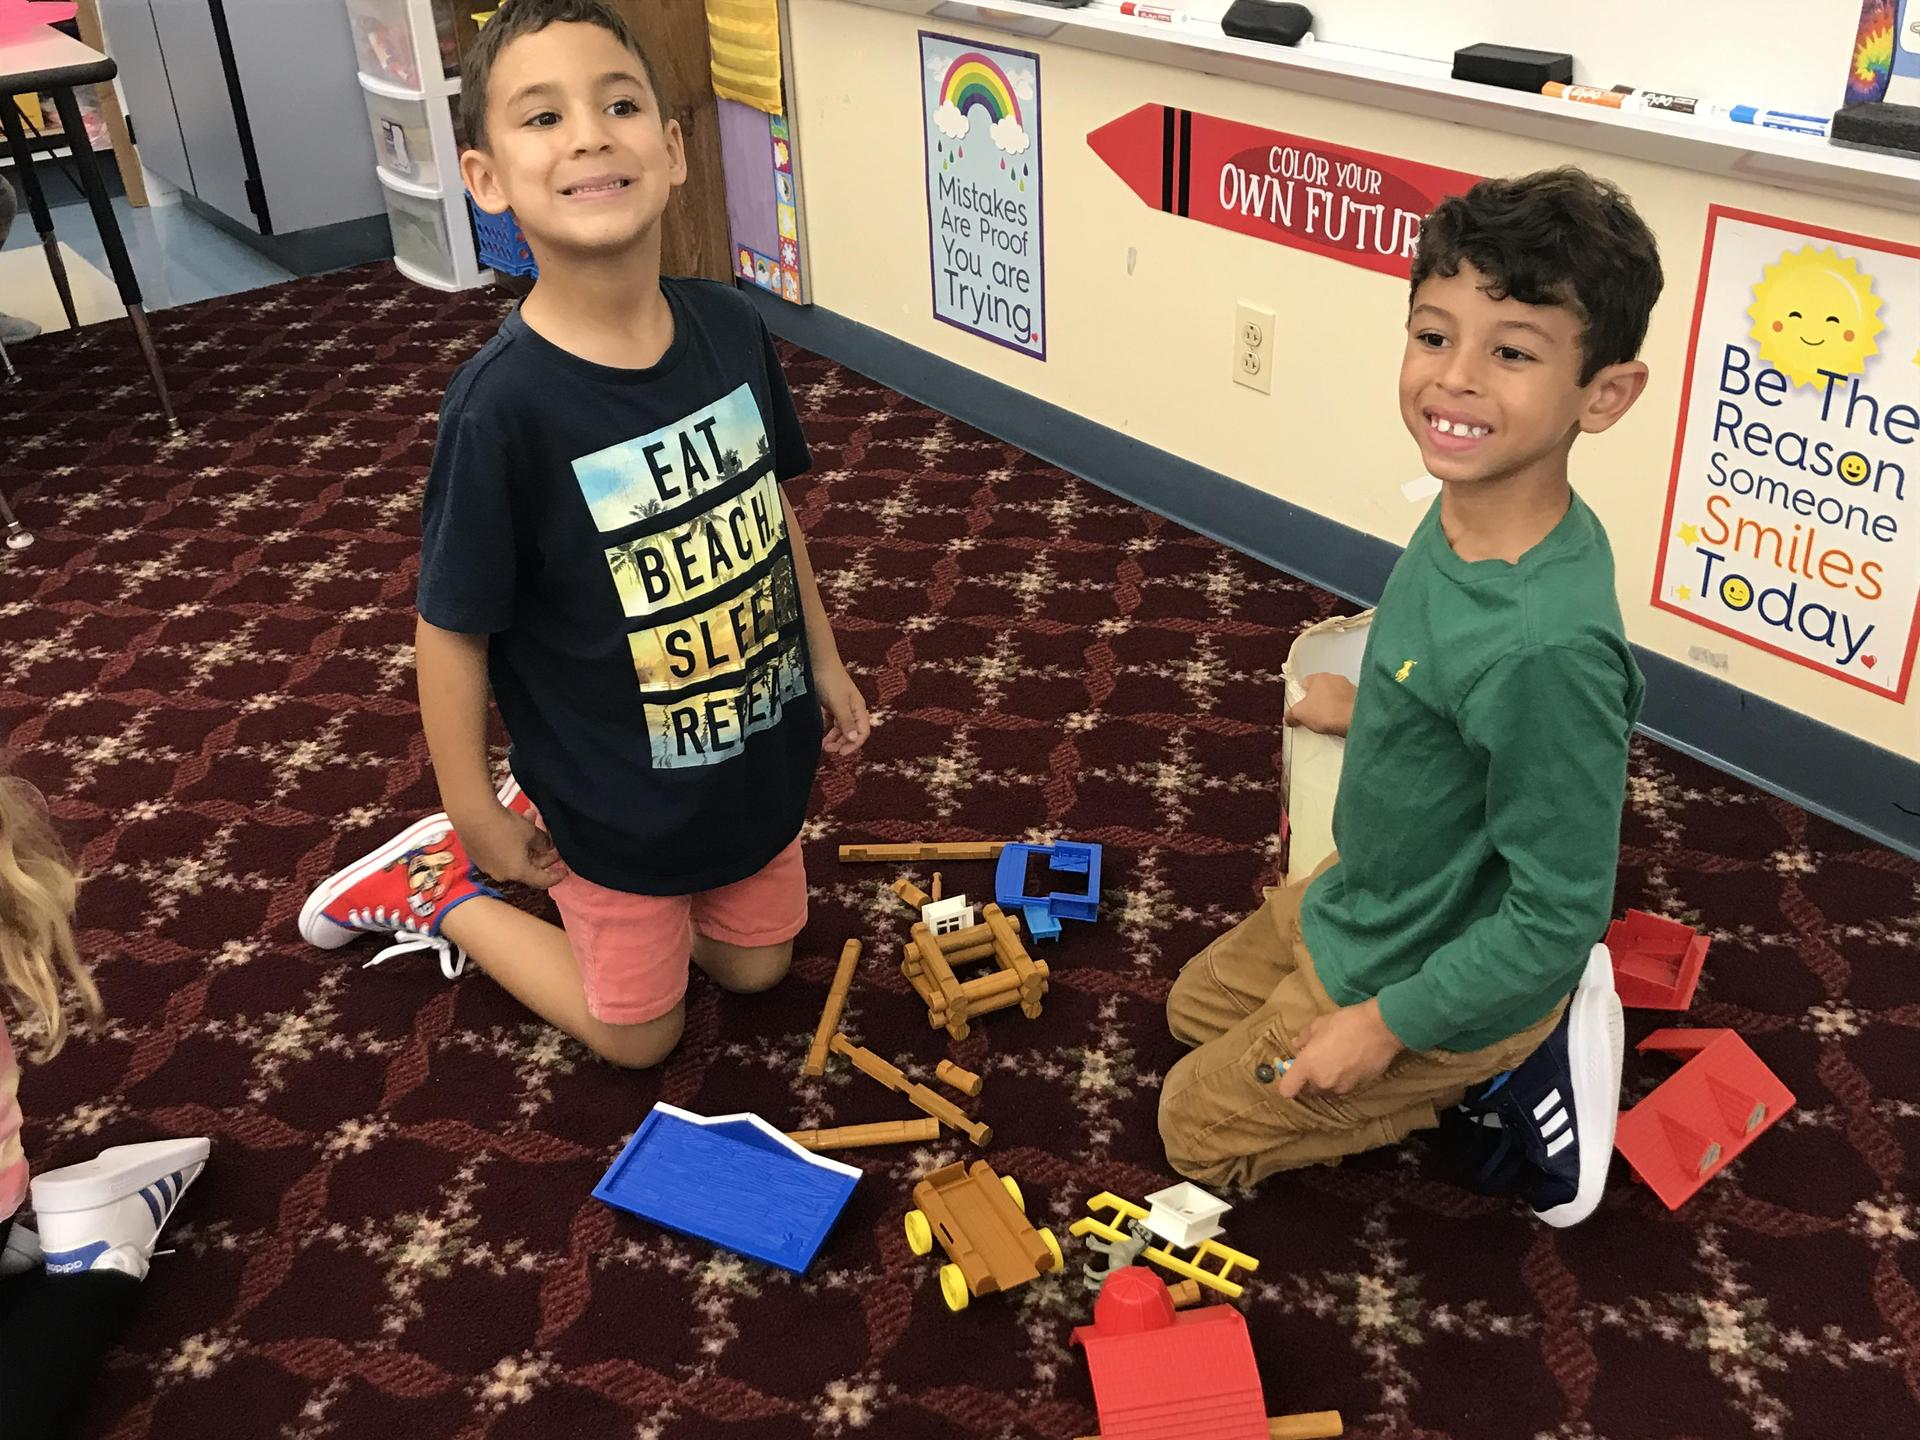 Creativity with Lincoln Logs